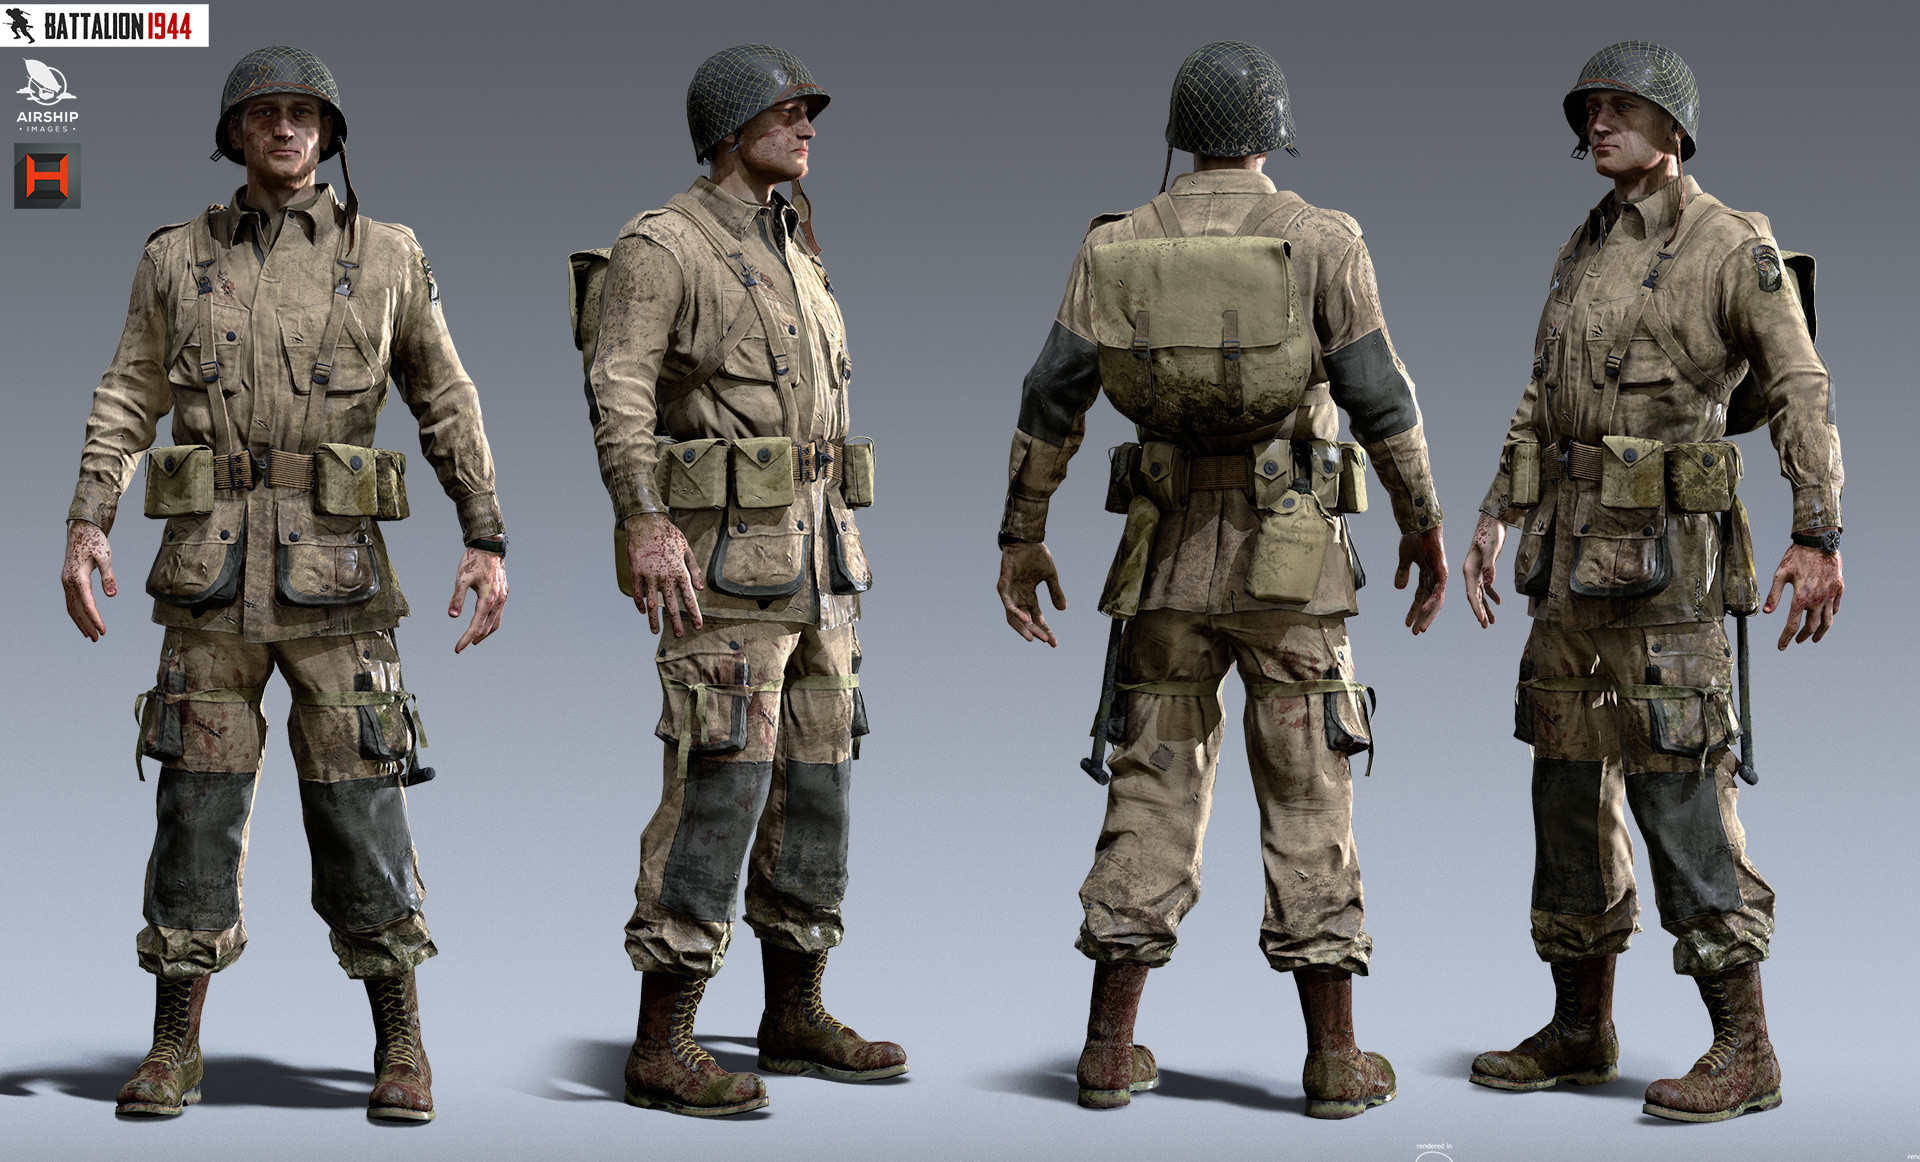 Artstation Battalion 1944 Characters Airship Images